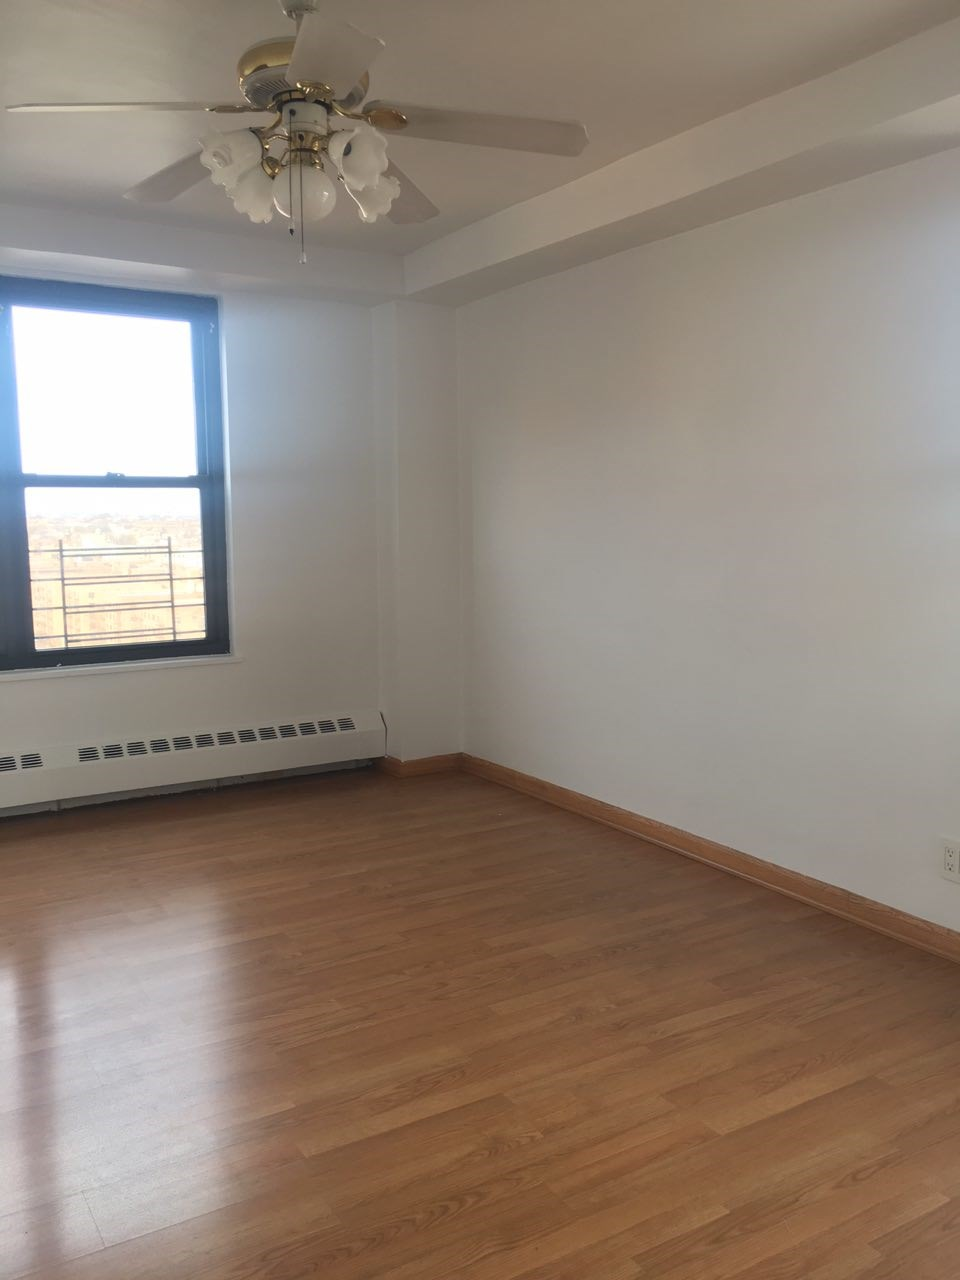 2 Bedroom Apartments For Rent In Staten Island: Apartments, Flats, Commercial